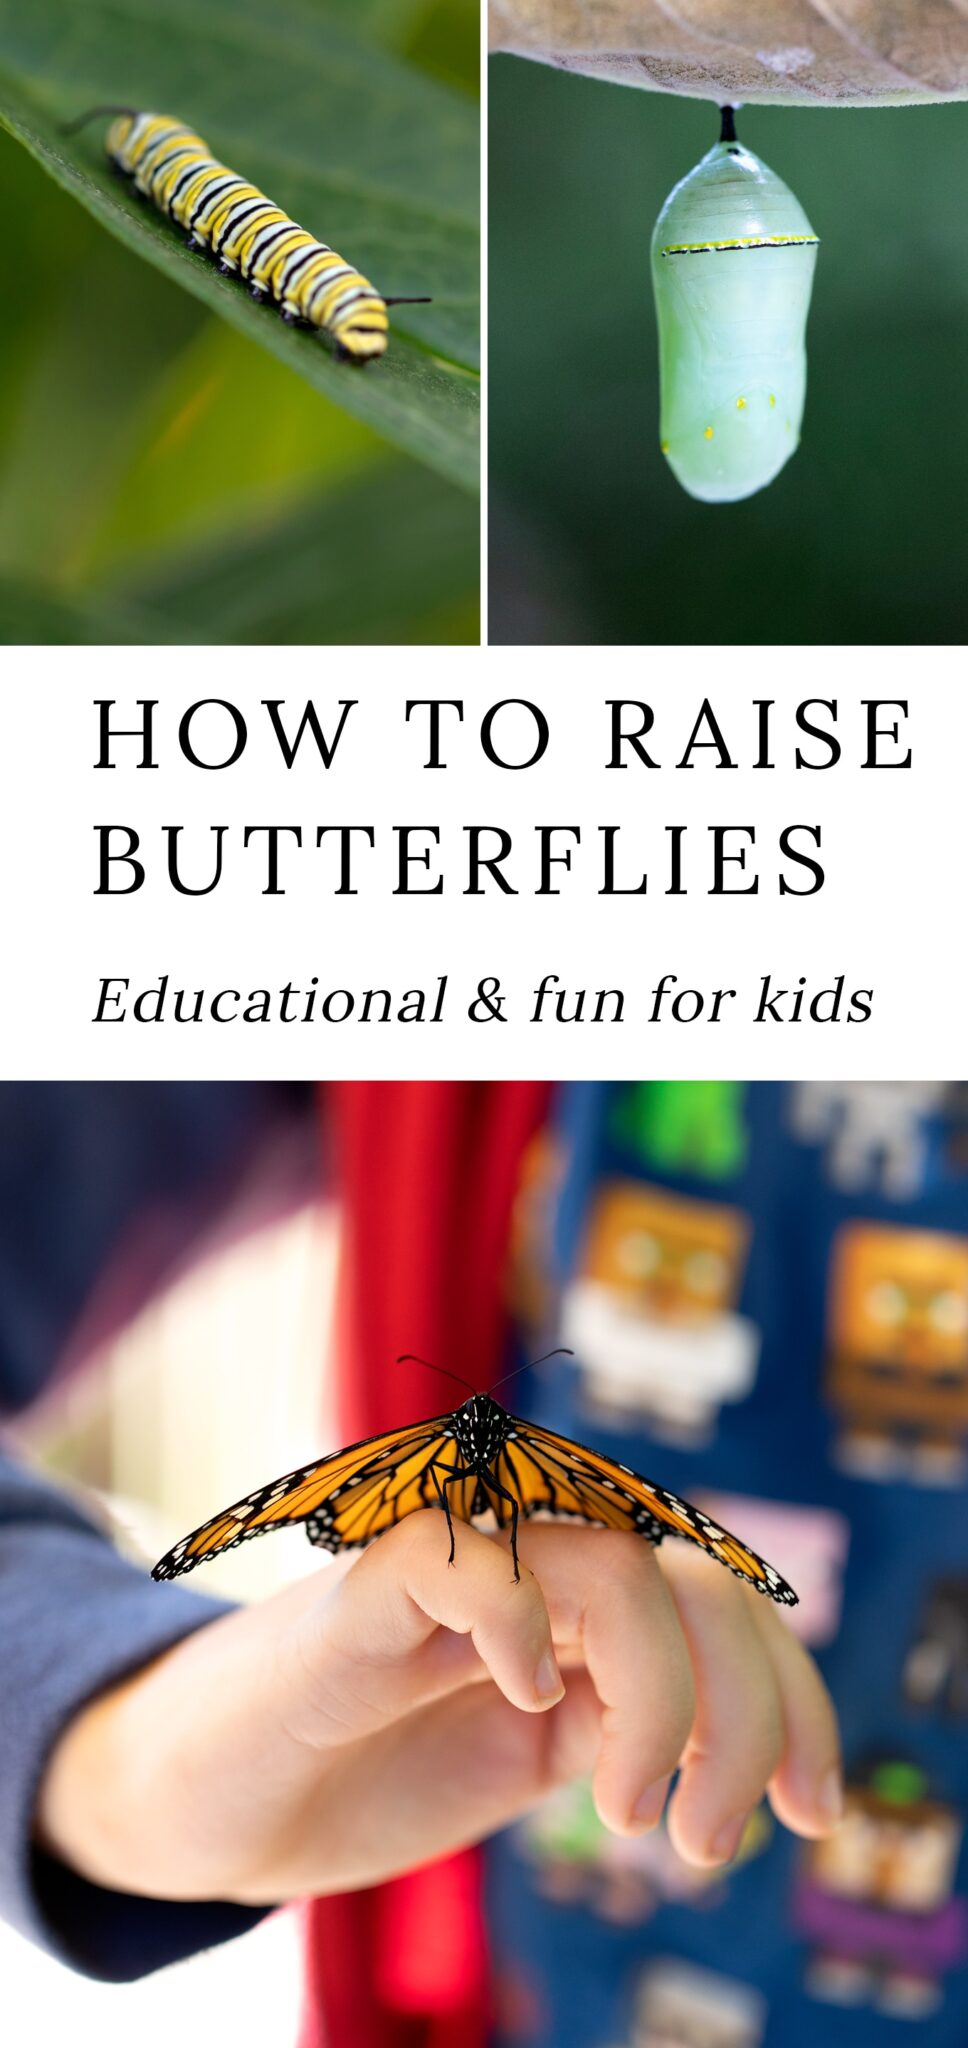 Learning how to raise butterflies, such as black swallowtail and monarch butterflies, is an easy, educational, and fun summer activity for kids of all ages! In this post, learn how to naturally attract butterflies to your backyard, how to set up and maintain a caterpillar habitat, and how to release butterflies back into nature. #raisingbutterflies #butterflies via @firefliesandmudpies